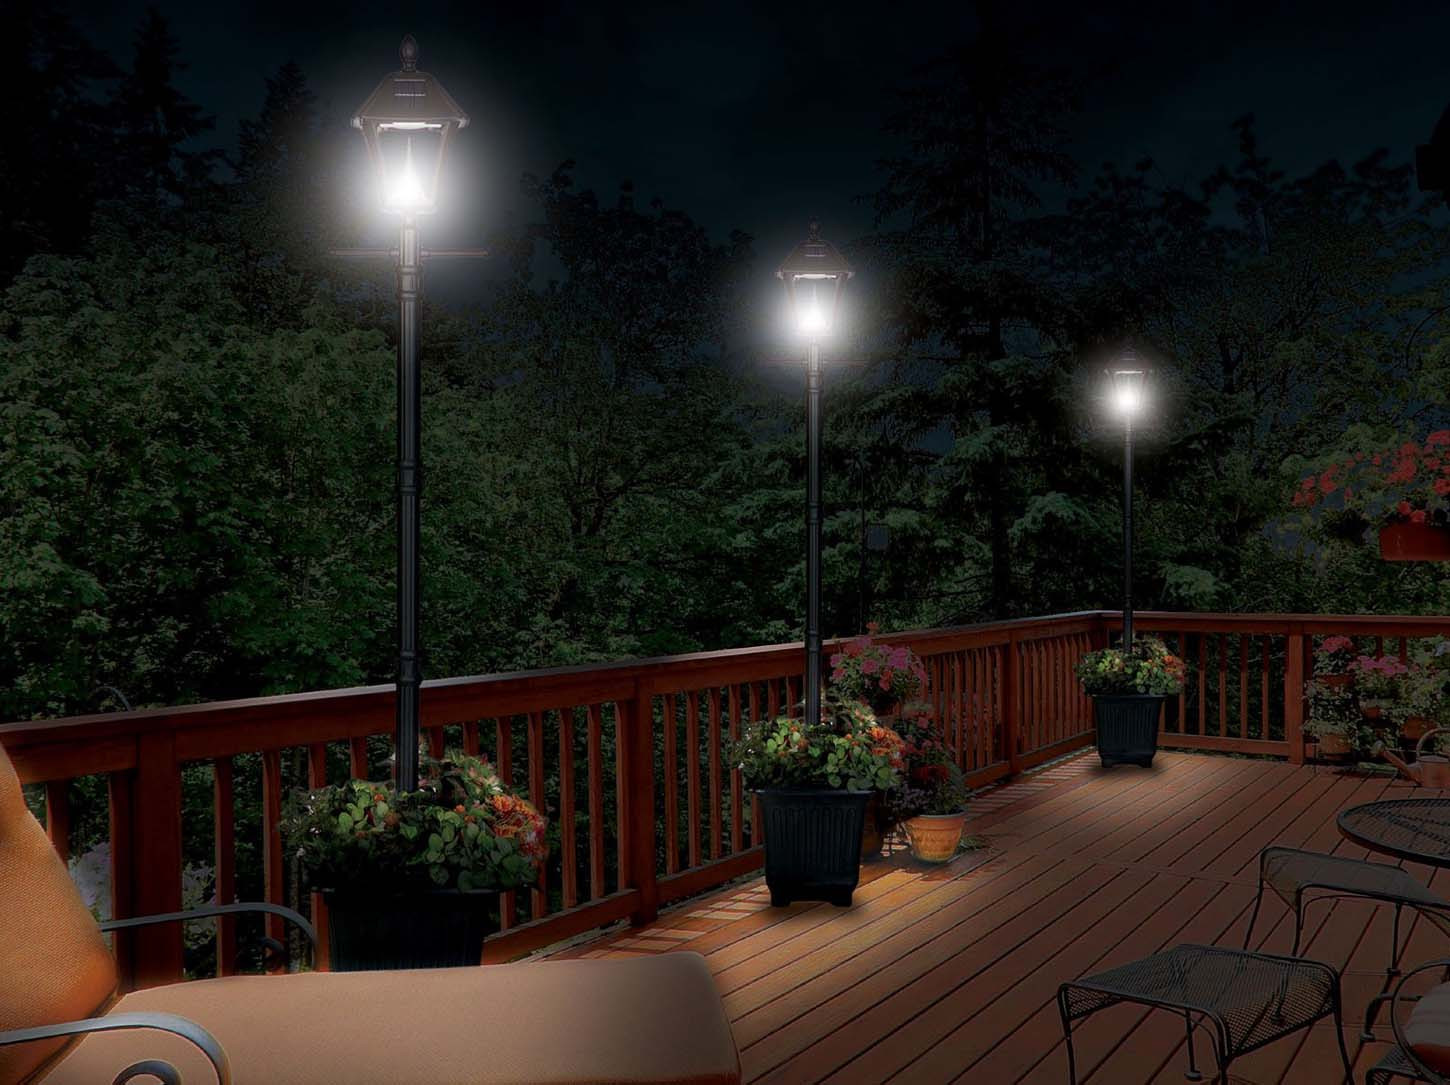 Outdoor Lighting Ideas 10 Stunning Outdoor Lighting Ideas for Backyard